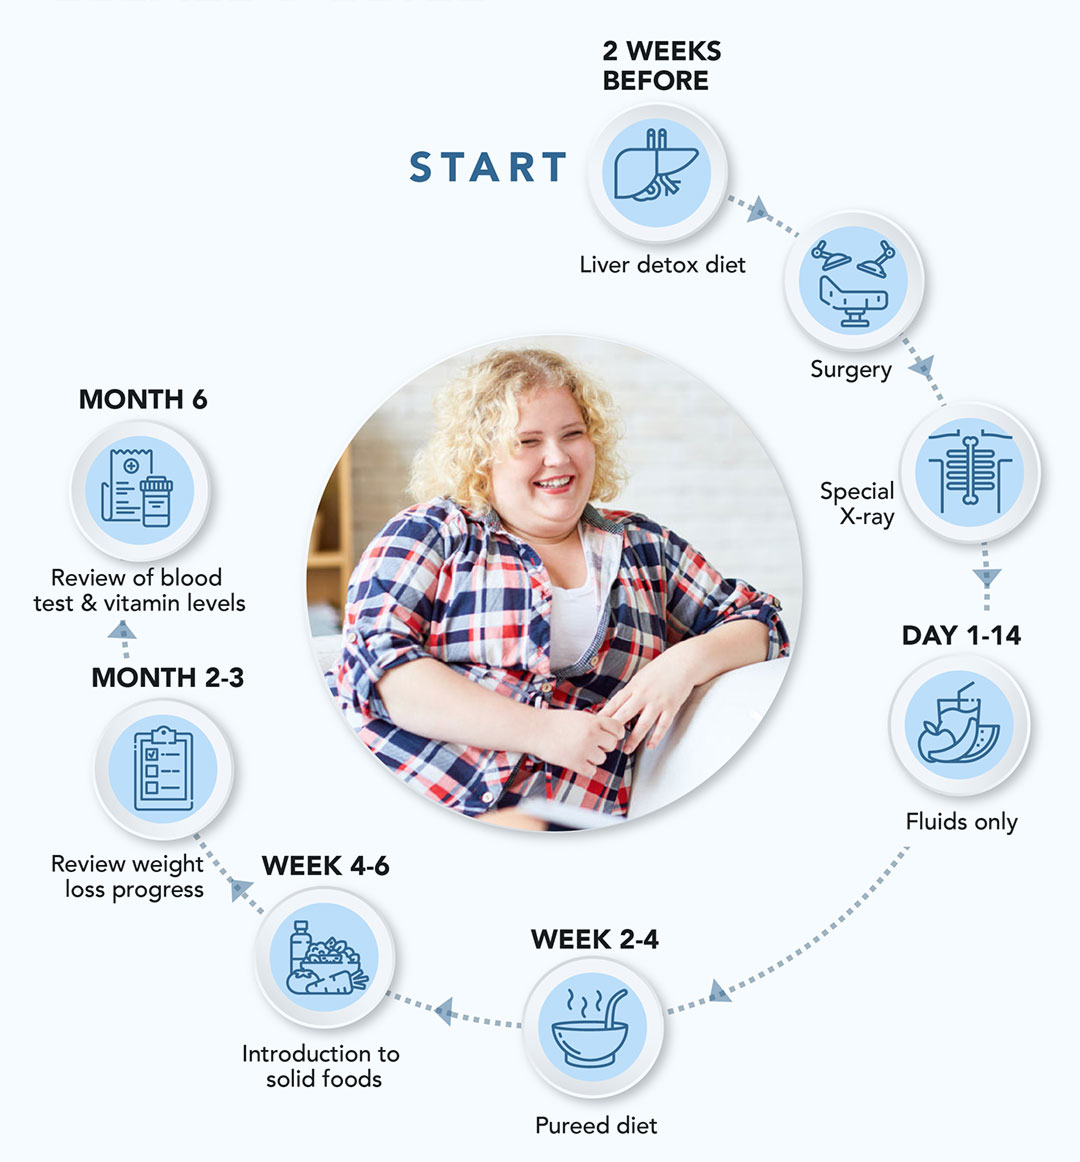 Diet Before and After Surgery diagram